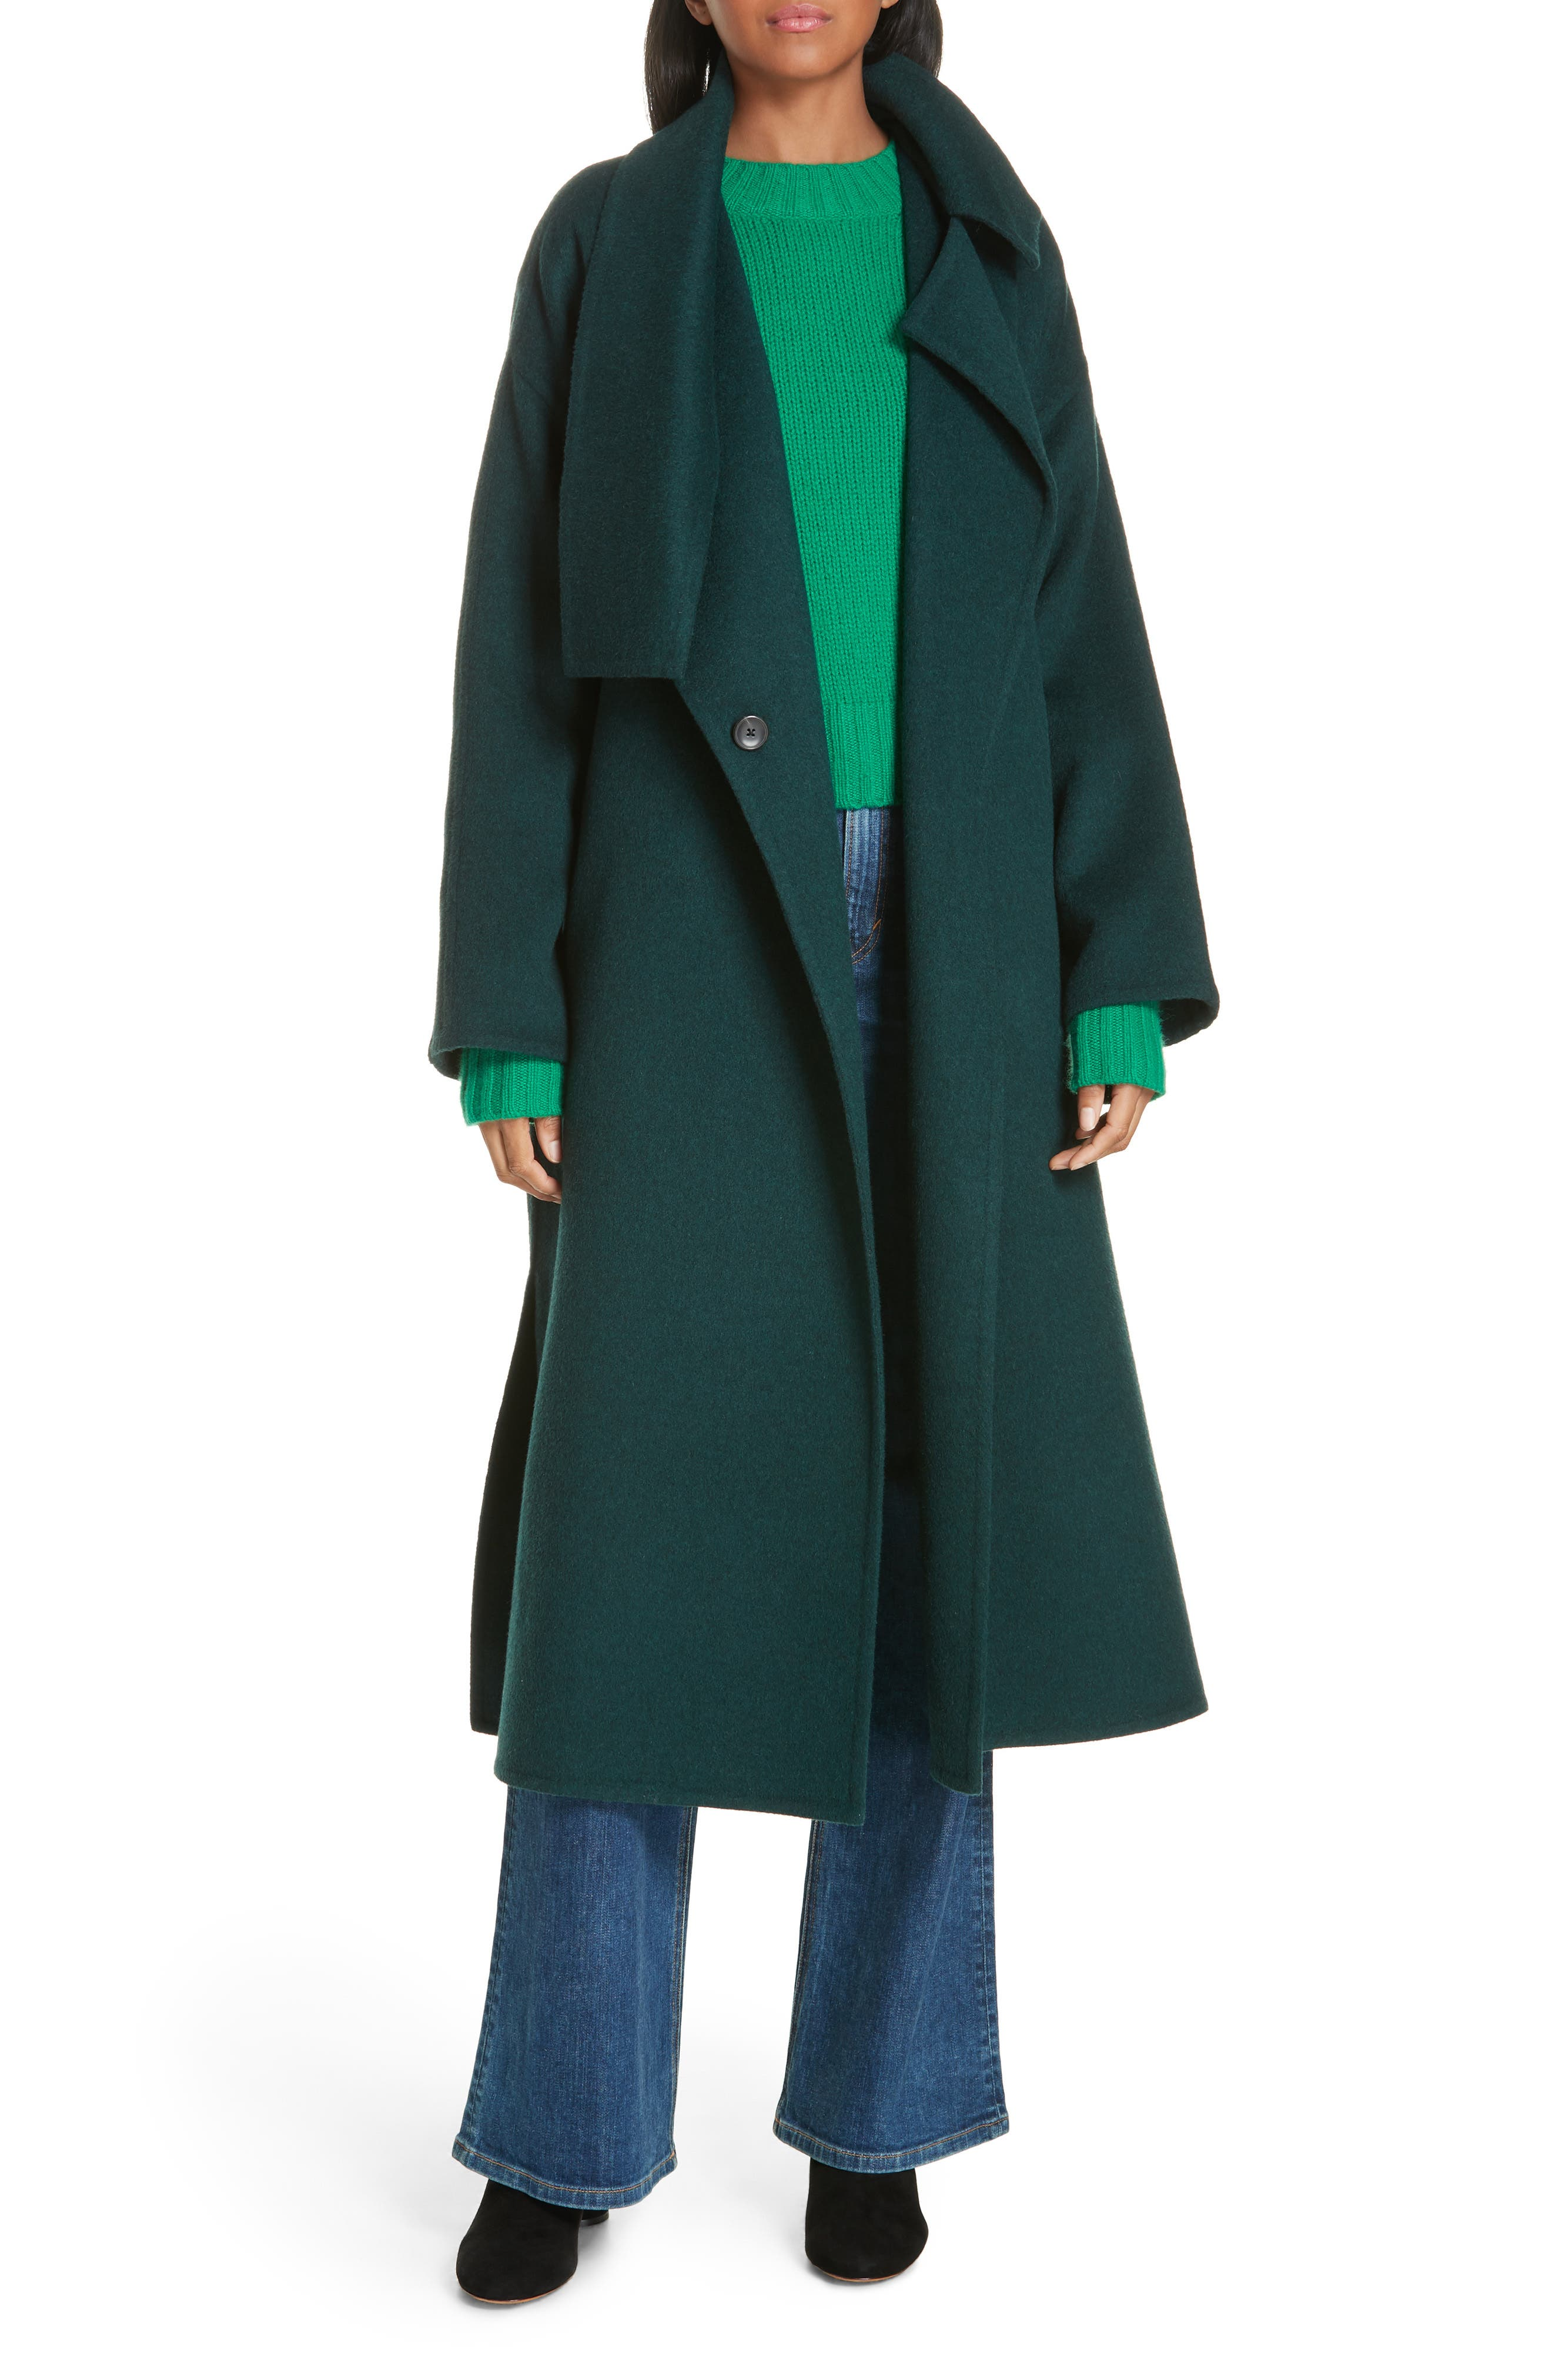 VINCE, Belted Wool Blend Cozy Coat, Alternate thumbnail 8, color, DARK PALM